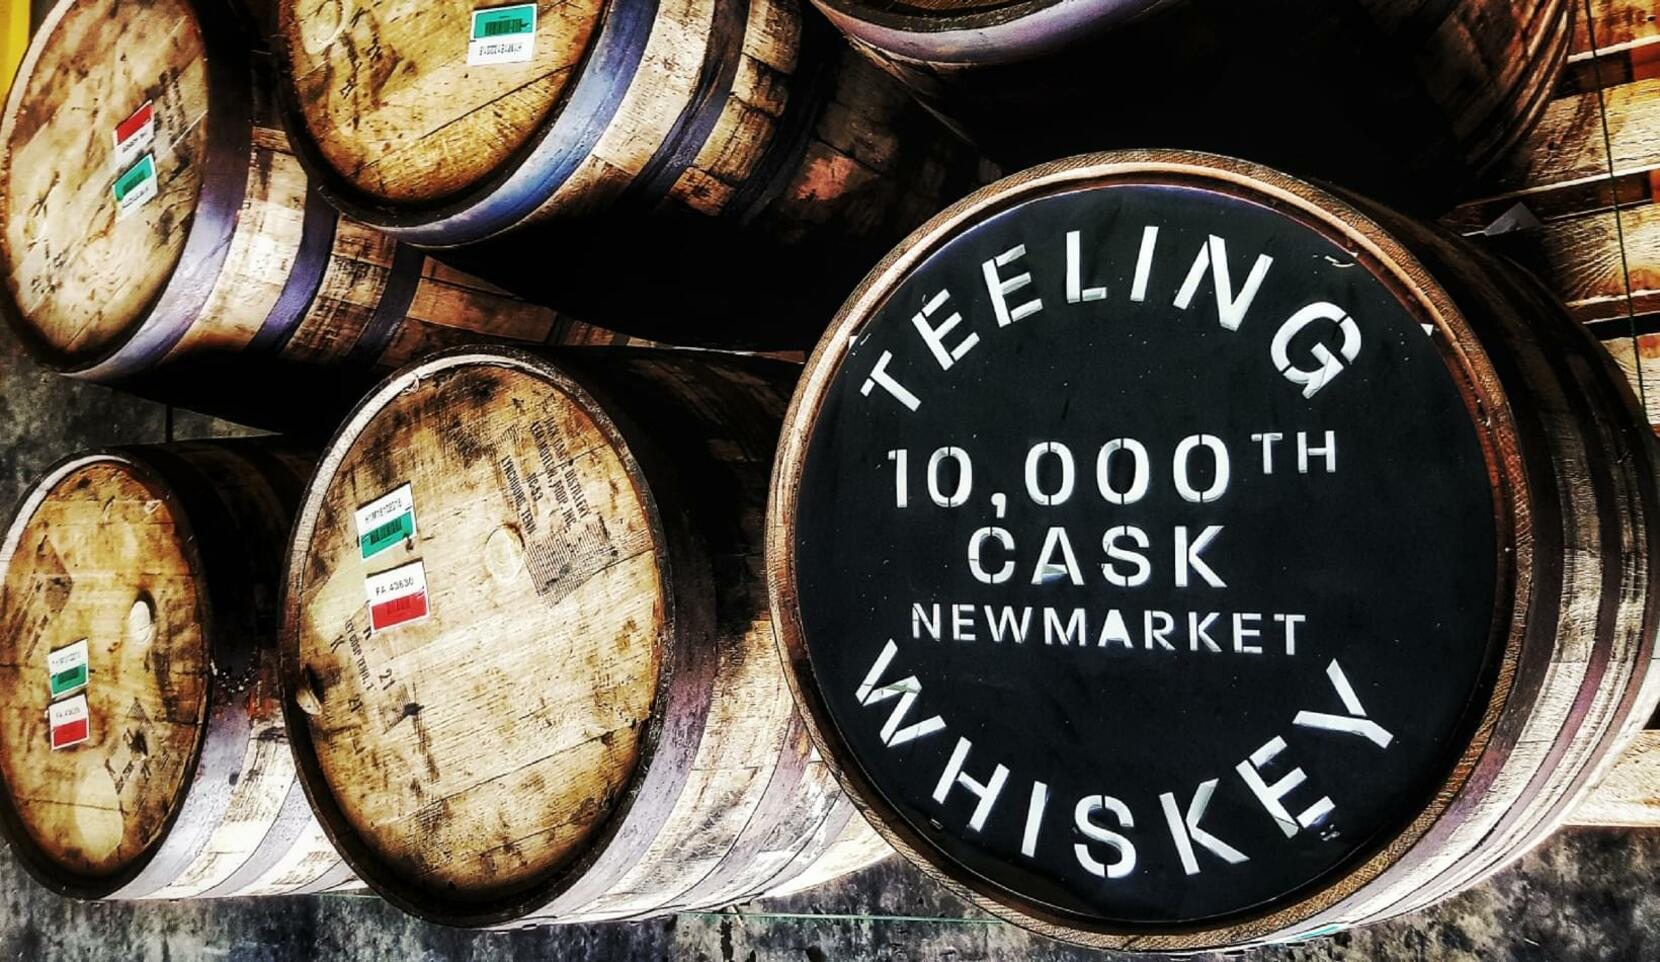 Award Winning Teeling Whiskey Fills 10,000th Cask of Dublin Distilled Whiskey